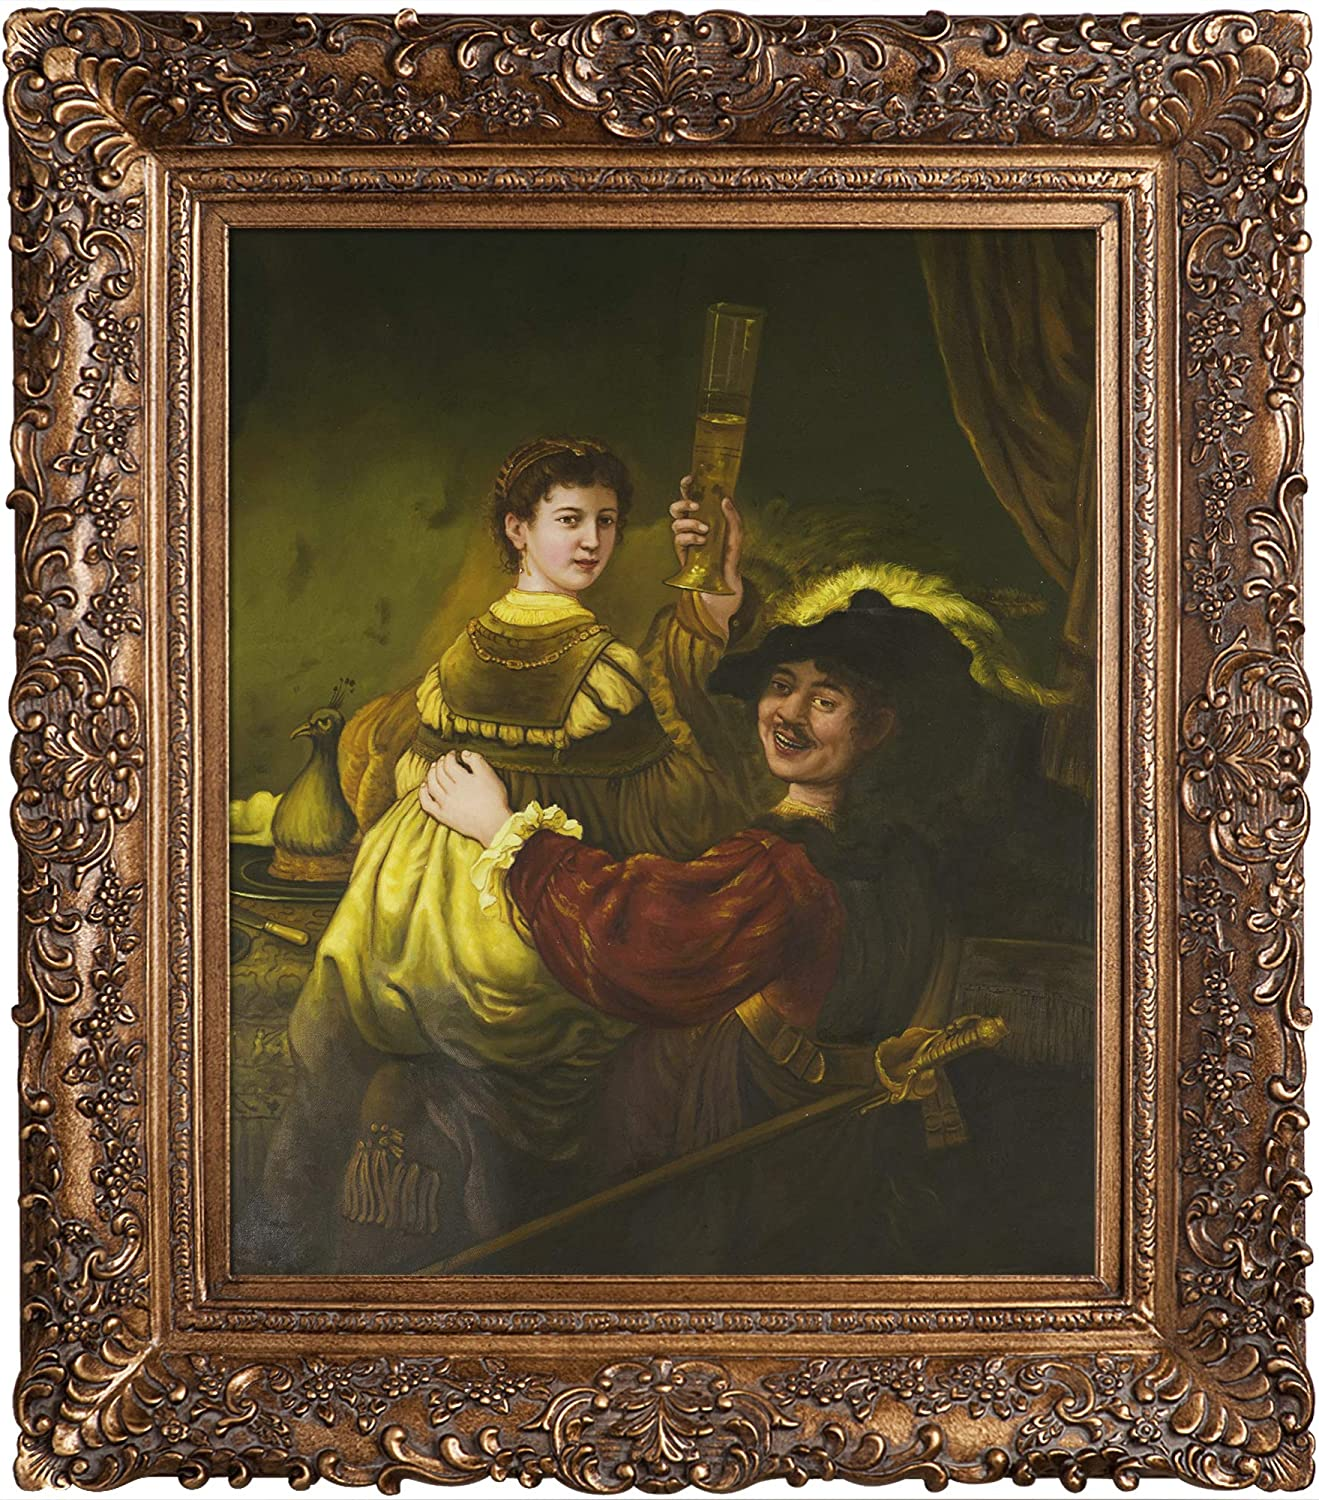 overstockArt Rembrandt and Saskia in The Parable of The Prodigal Son Framed Oil Reproduction of an Original Painting by Rembrandt, Burgeon Frame, Organic Pattern Facade with Gold Finish